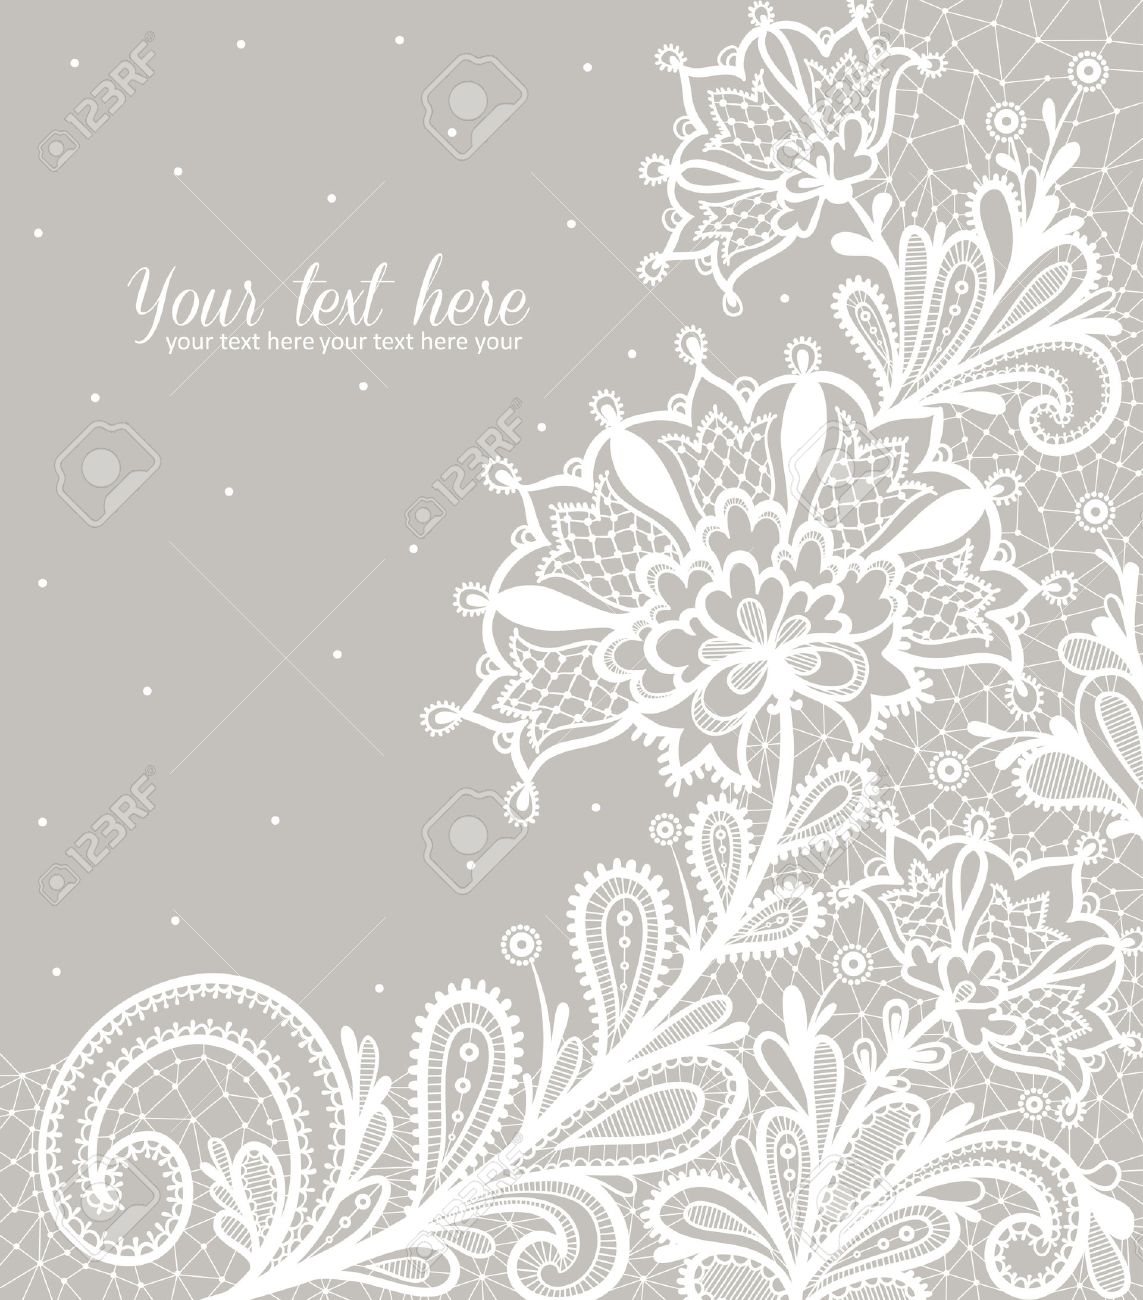 Black lace on a white background vector design. - 46449104